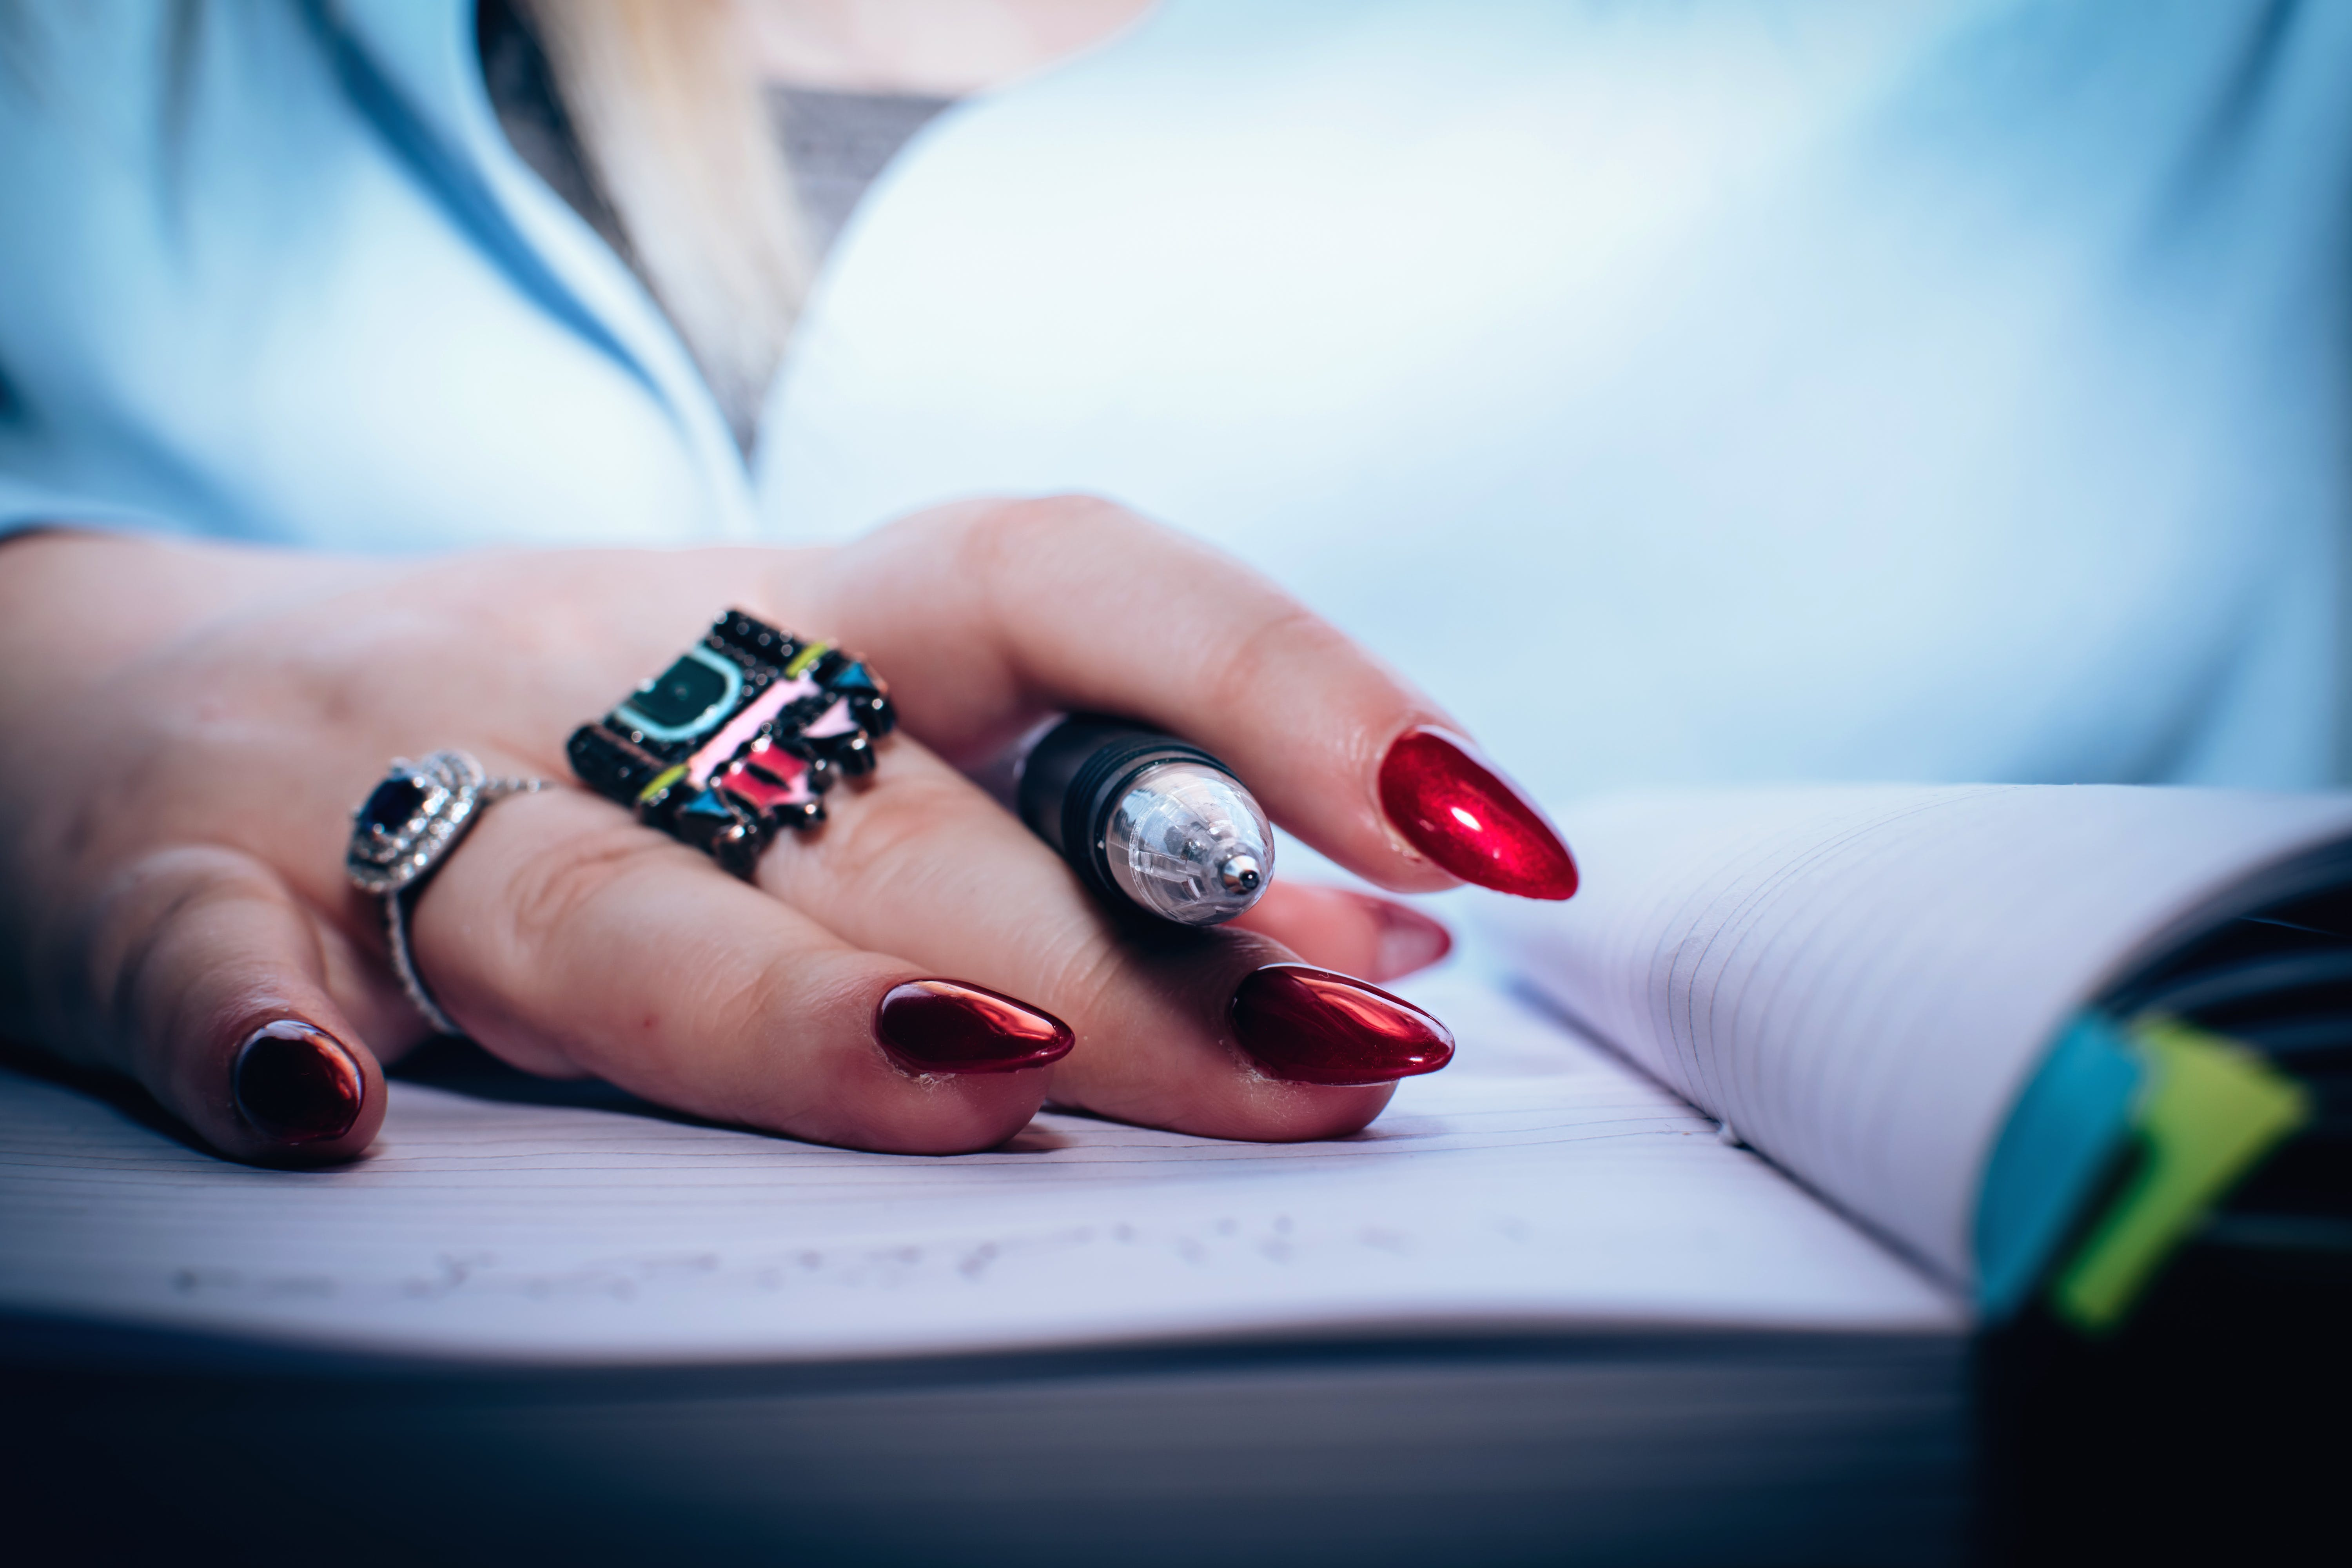 Person With Red Nail Polish Holding Black Pen